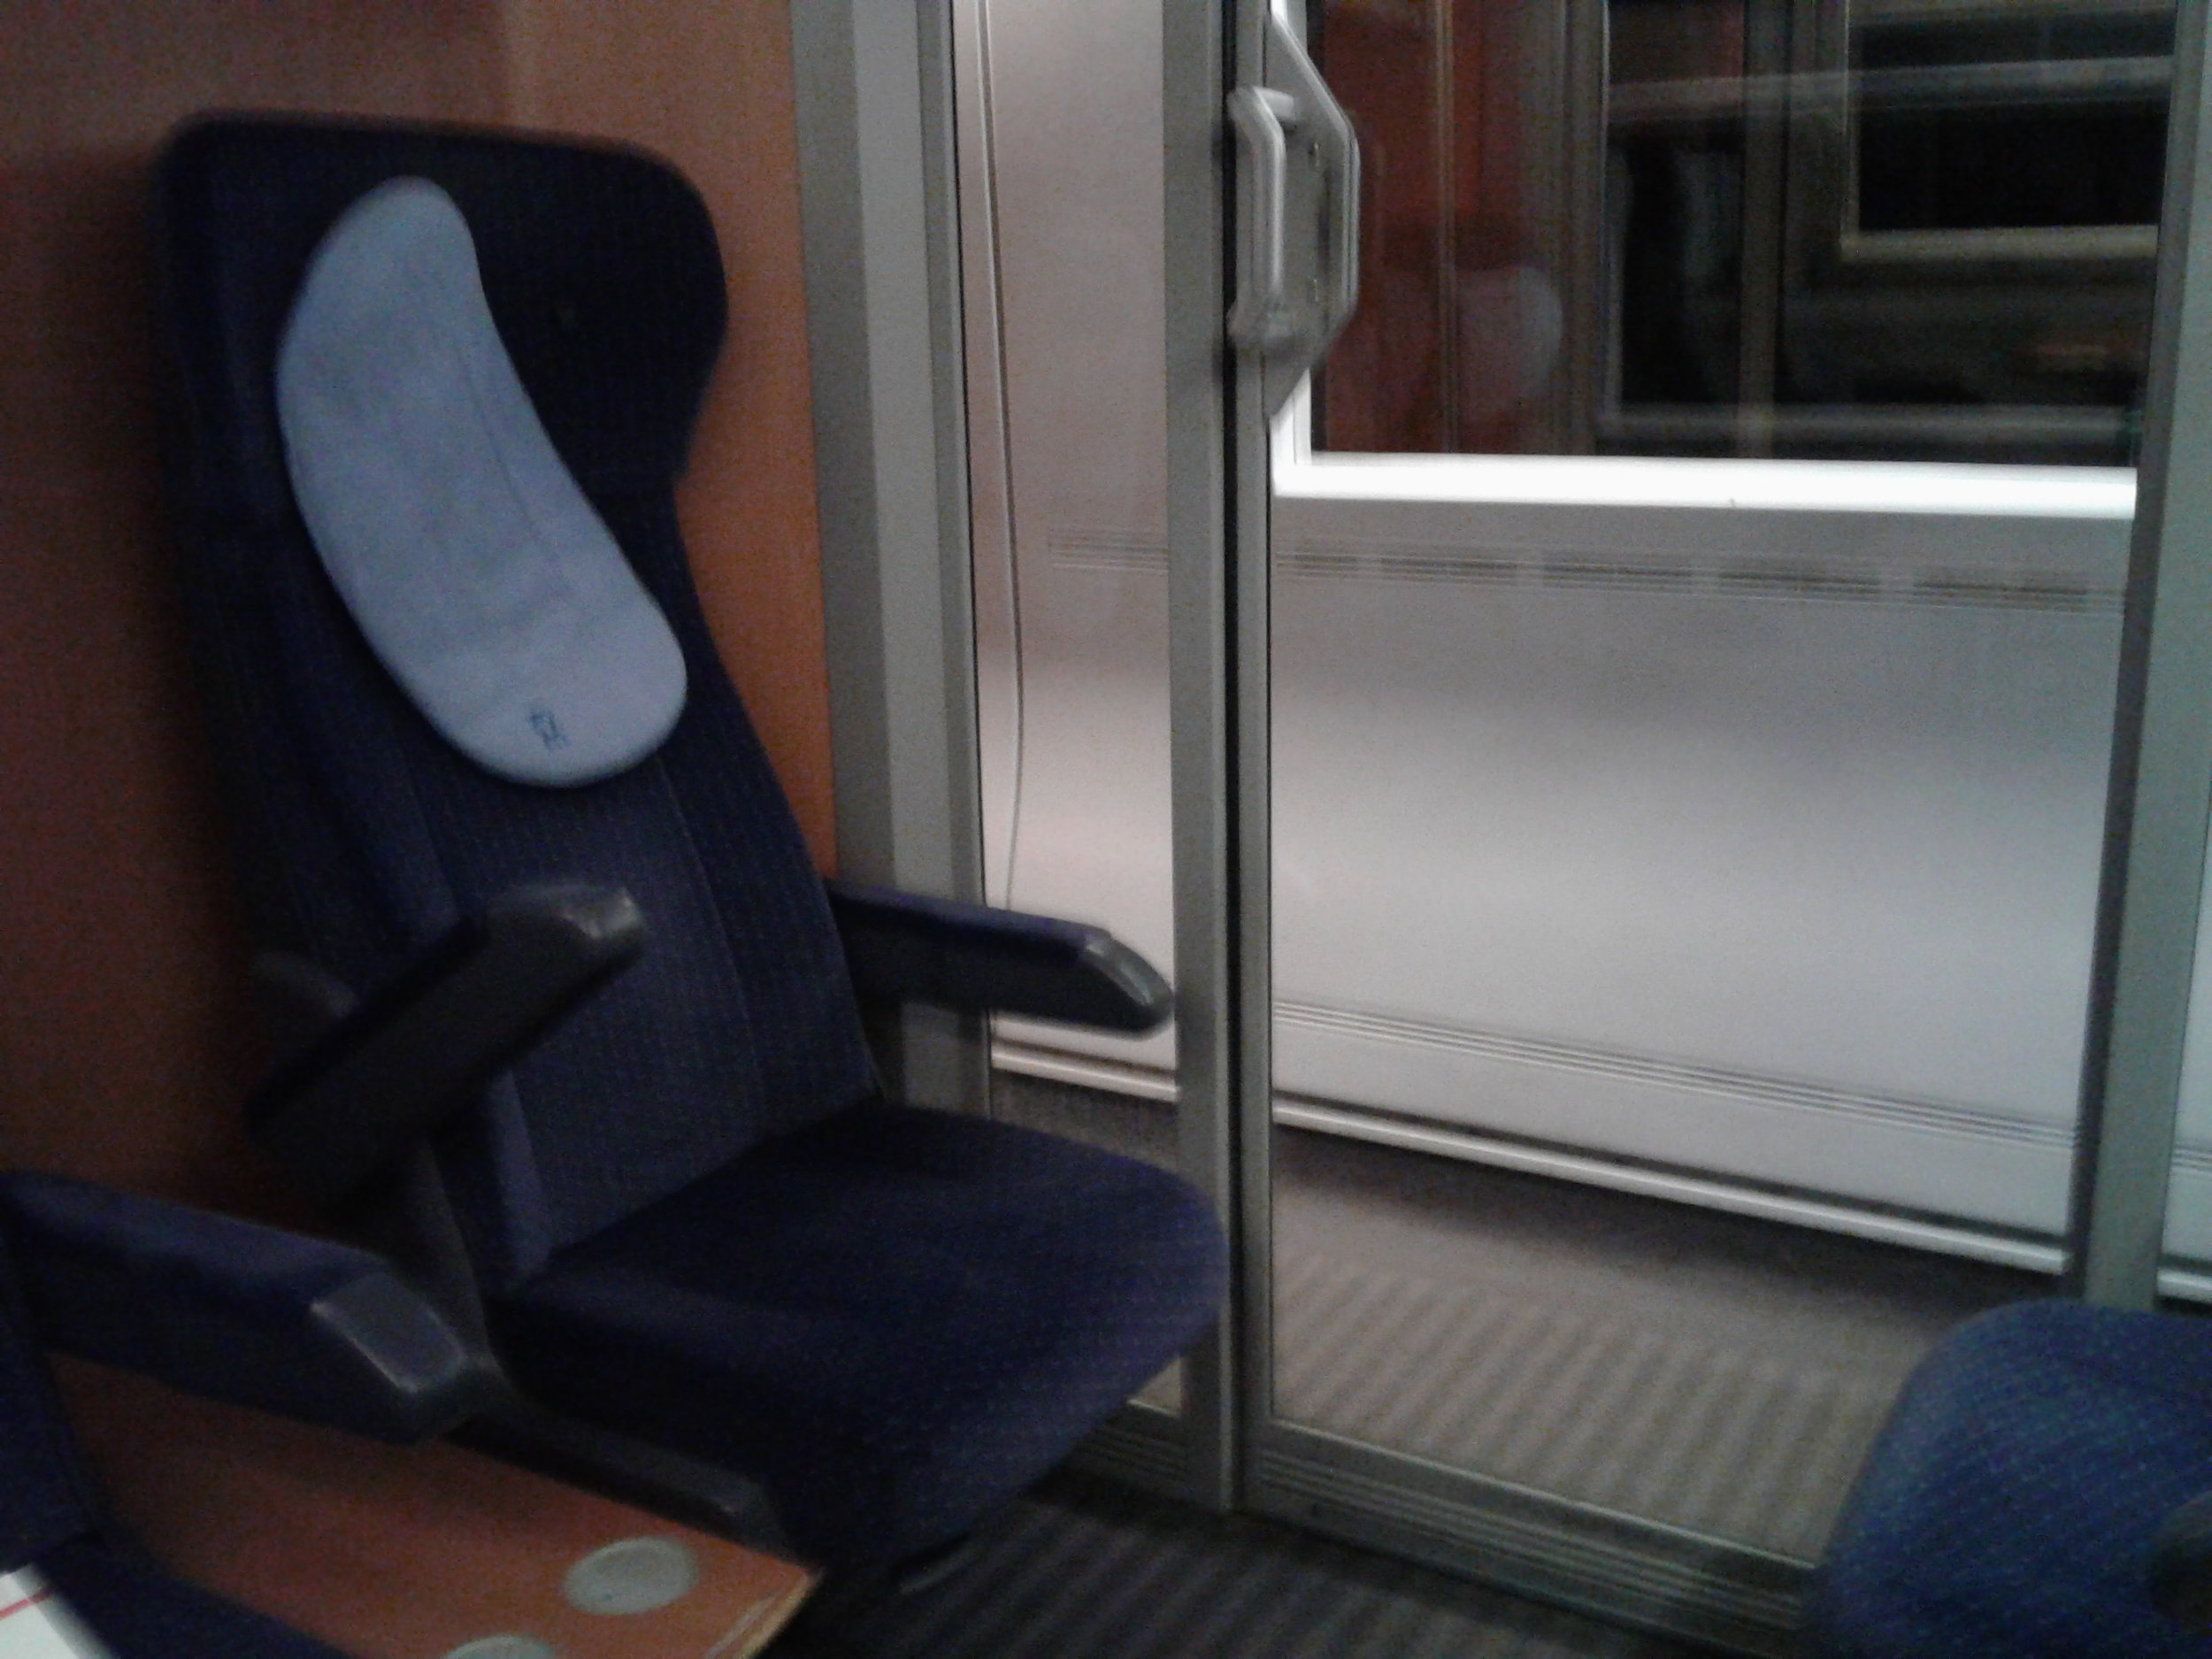 At least part off the day involved having a compartment to myself.